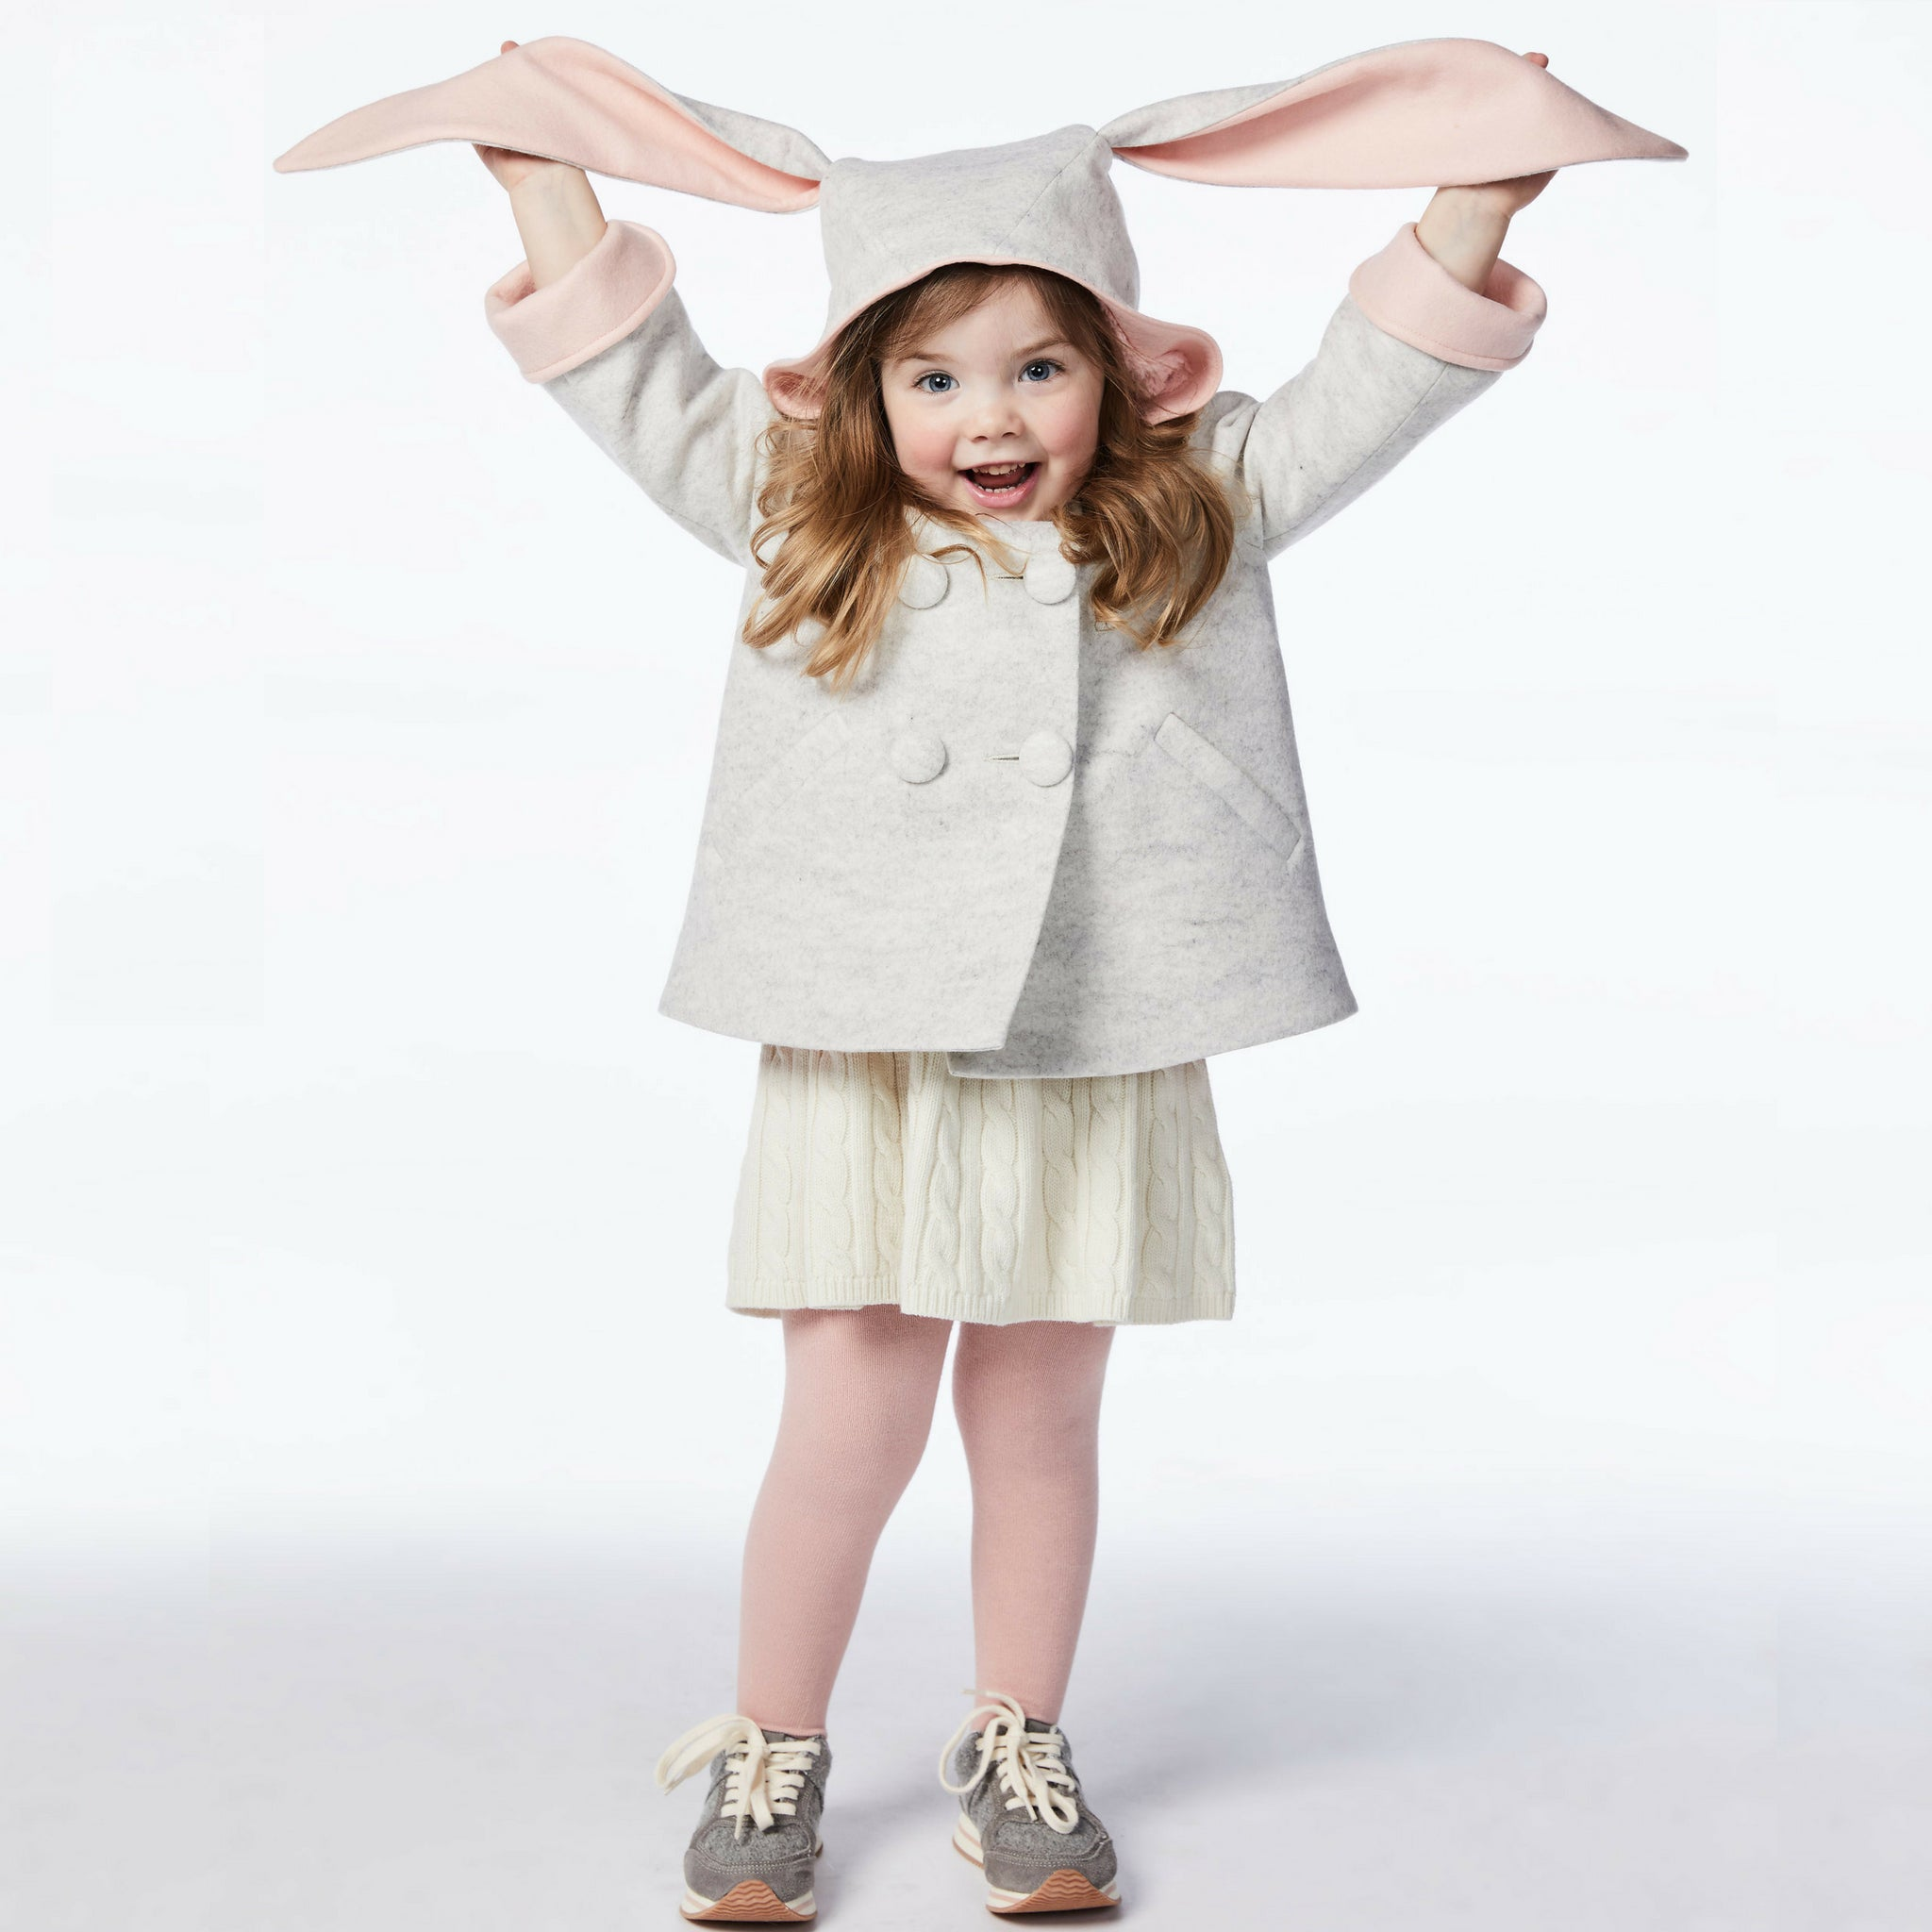 girl modeling grey bunny coat, holding up grey and pink bunny ears.